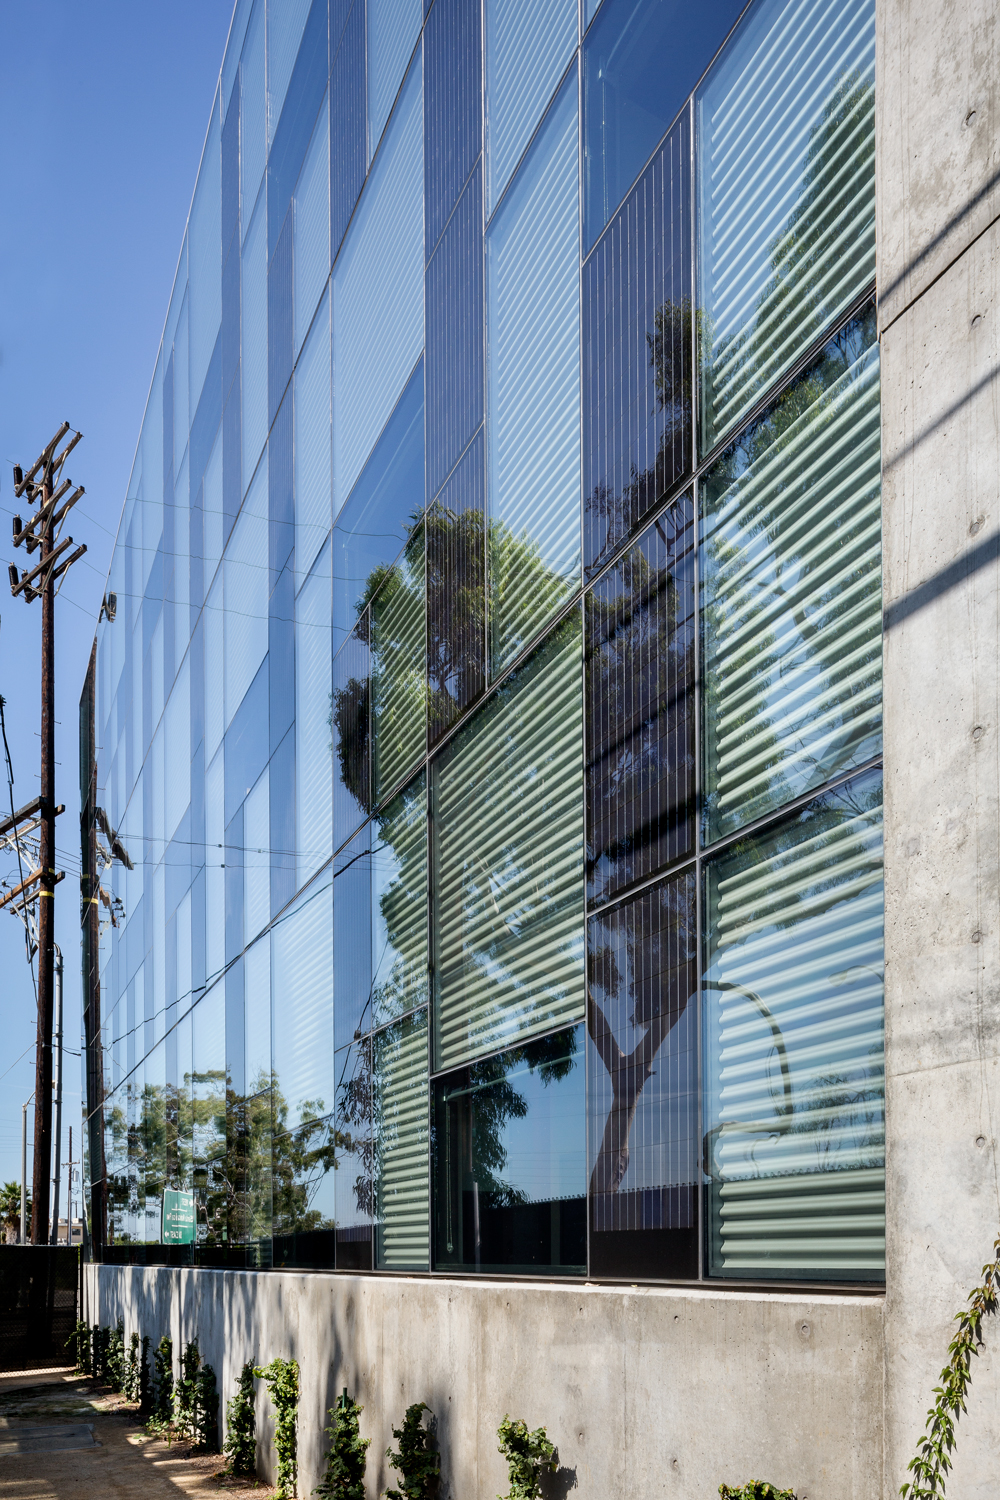 Photovoltaic Panels gather solar energy and use it to power the building